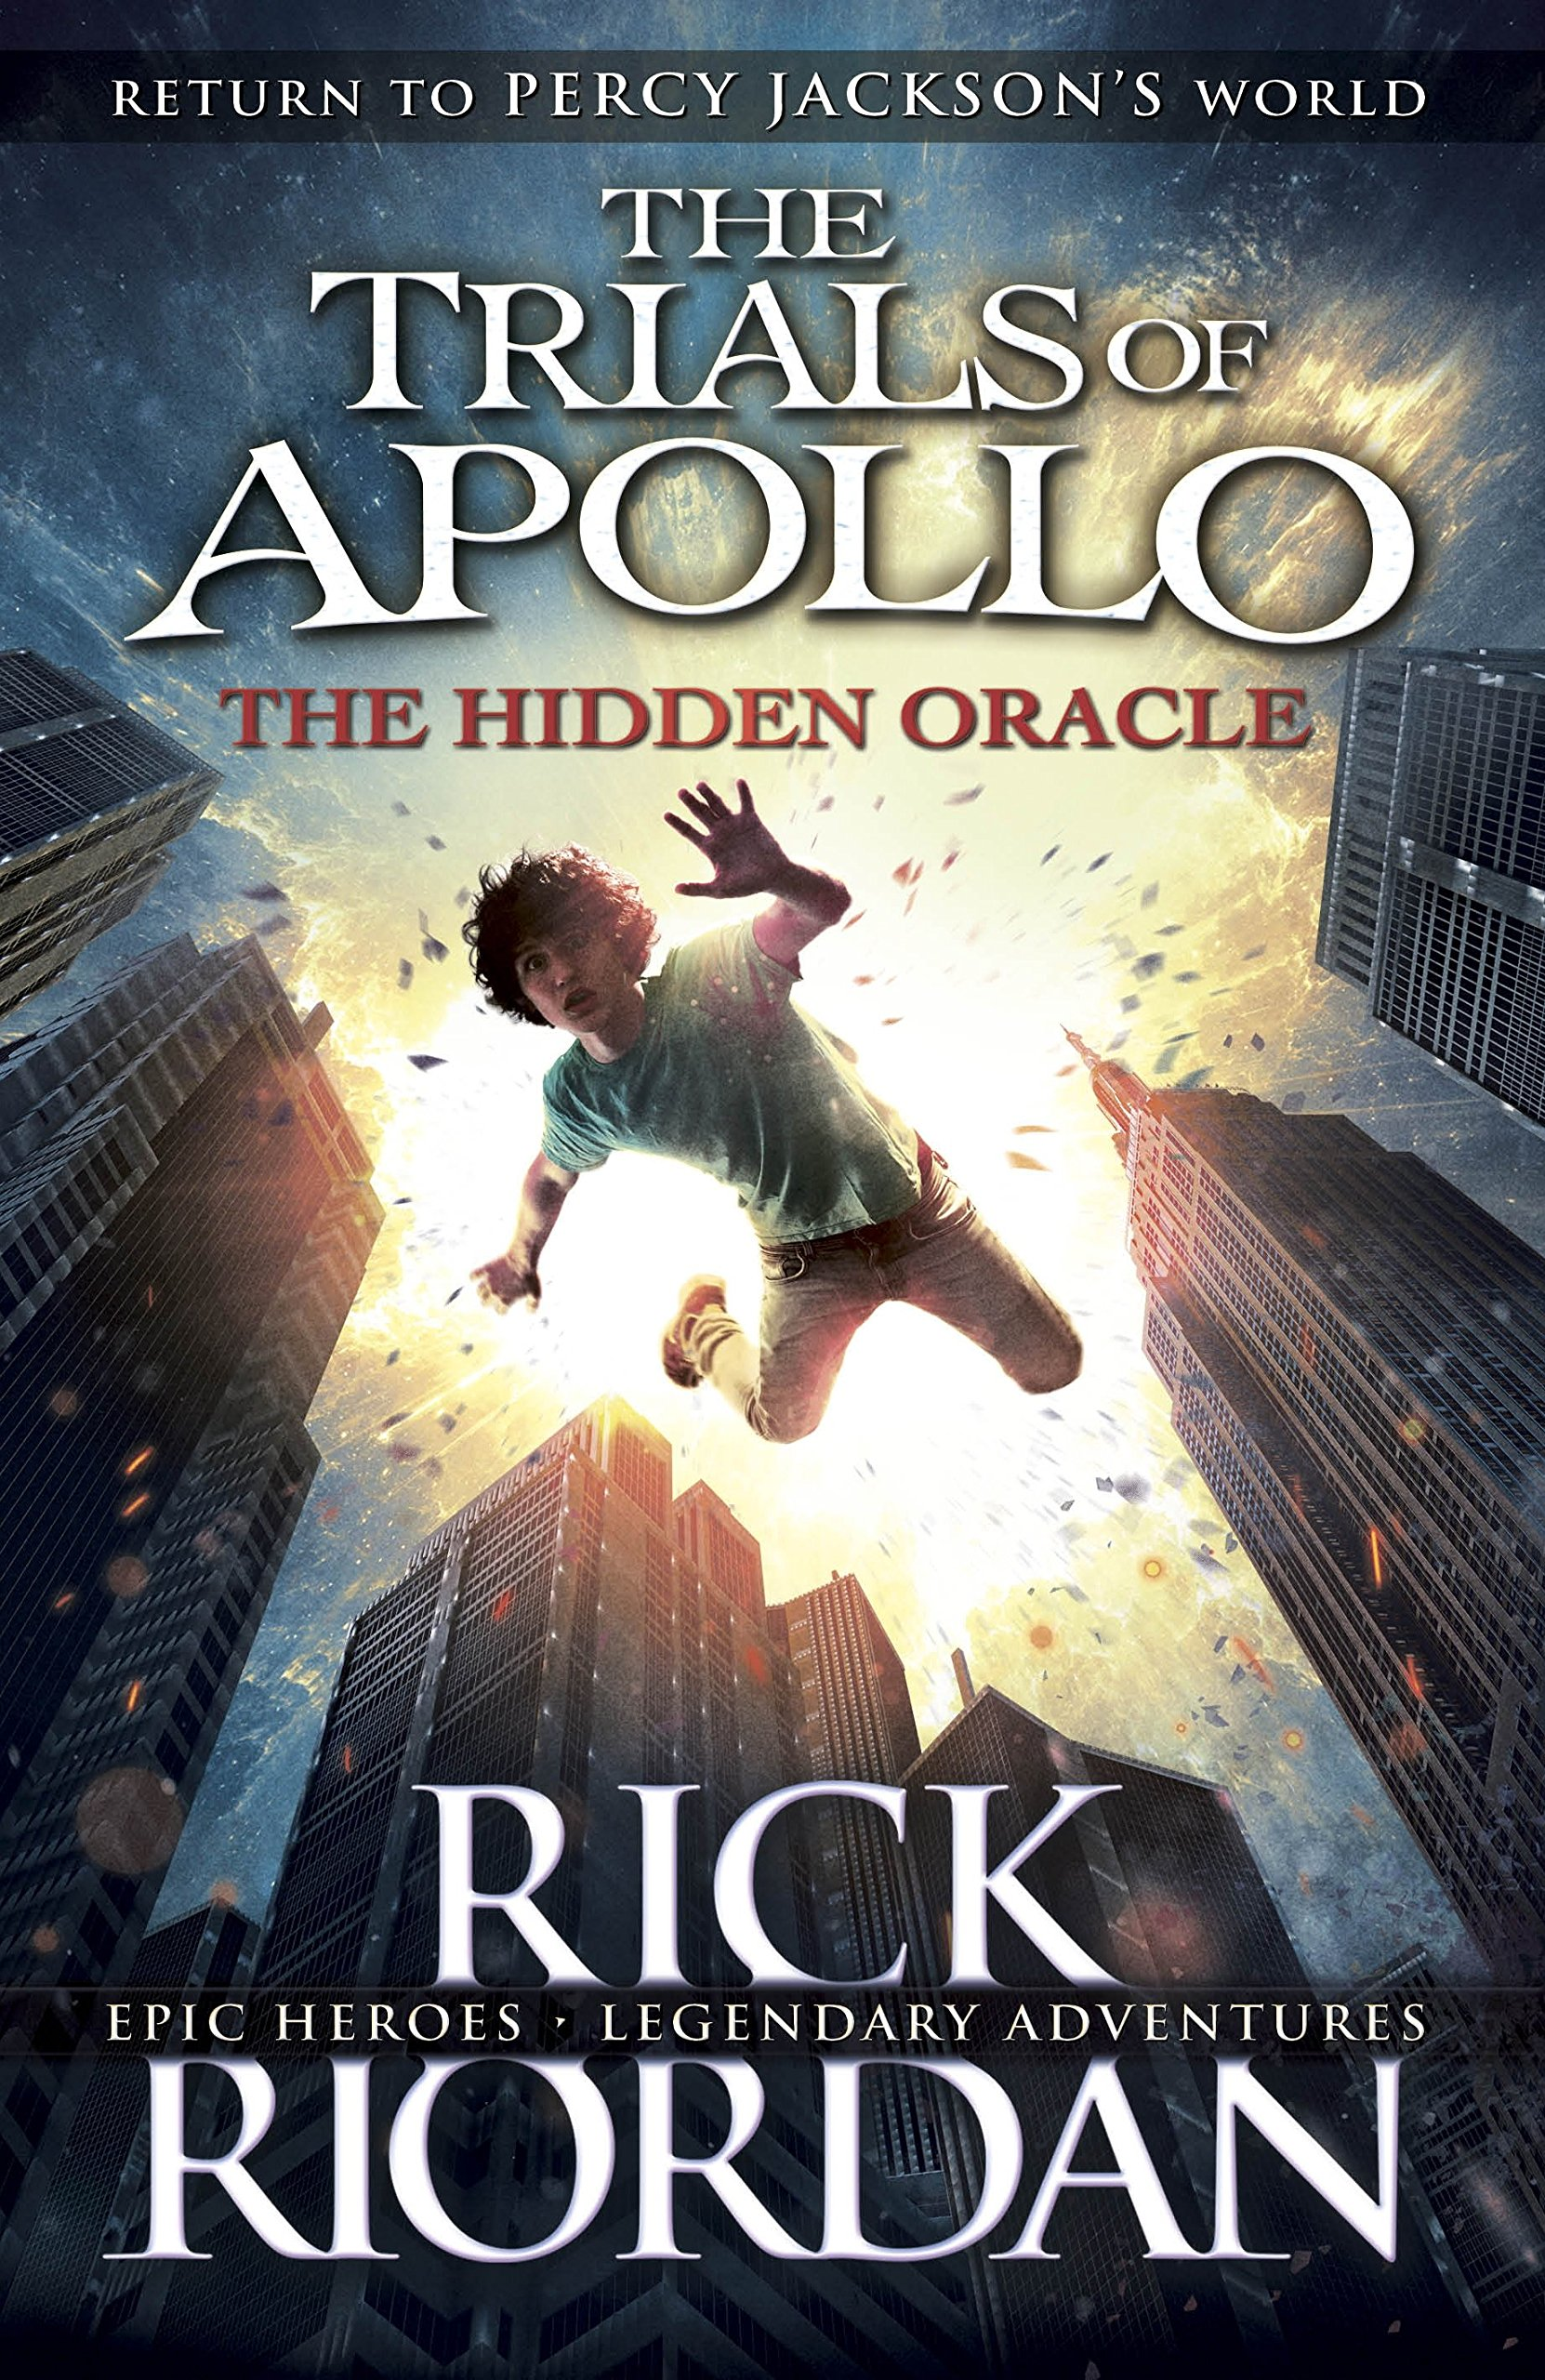 The Hidden Oracle (The Trials of Apollo Book 1): Amazon.co.uk ...